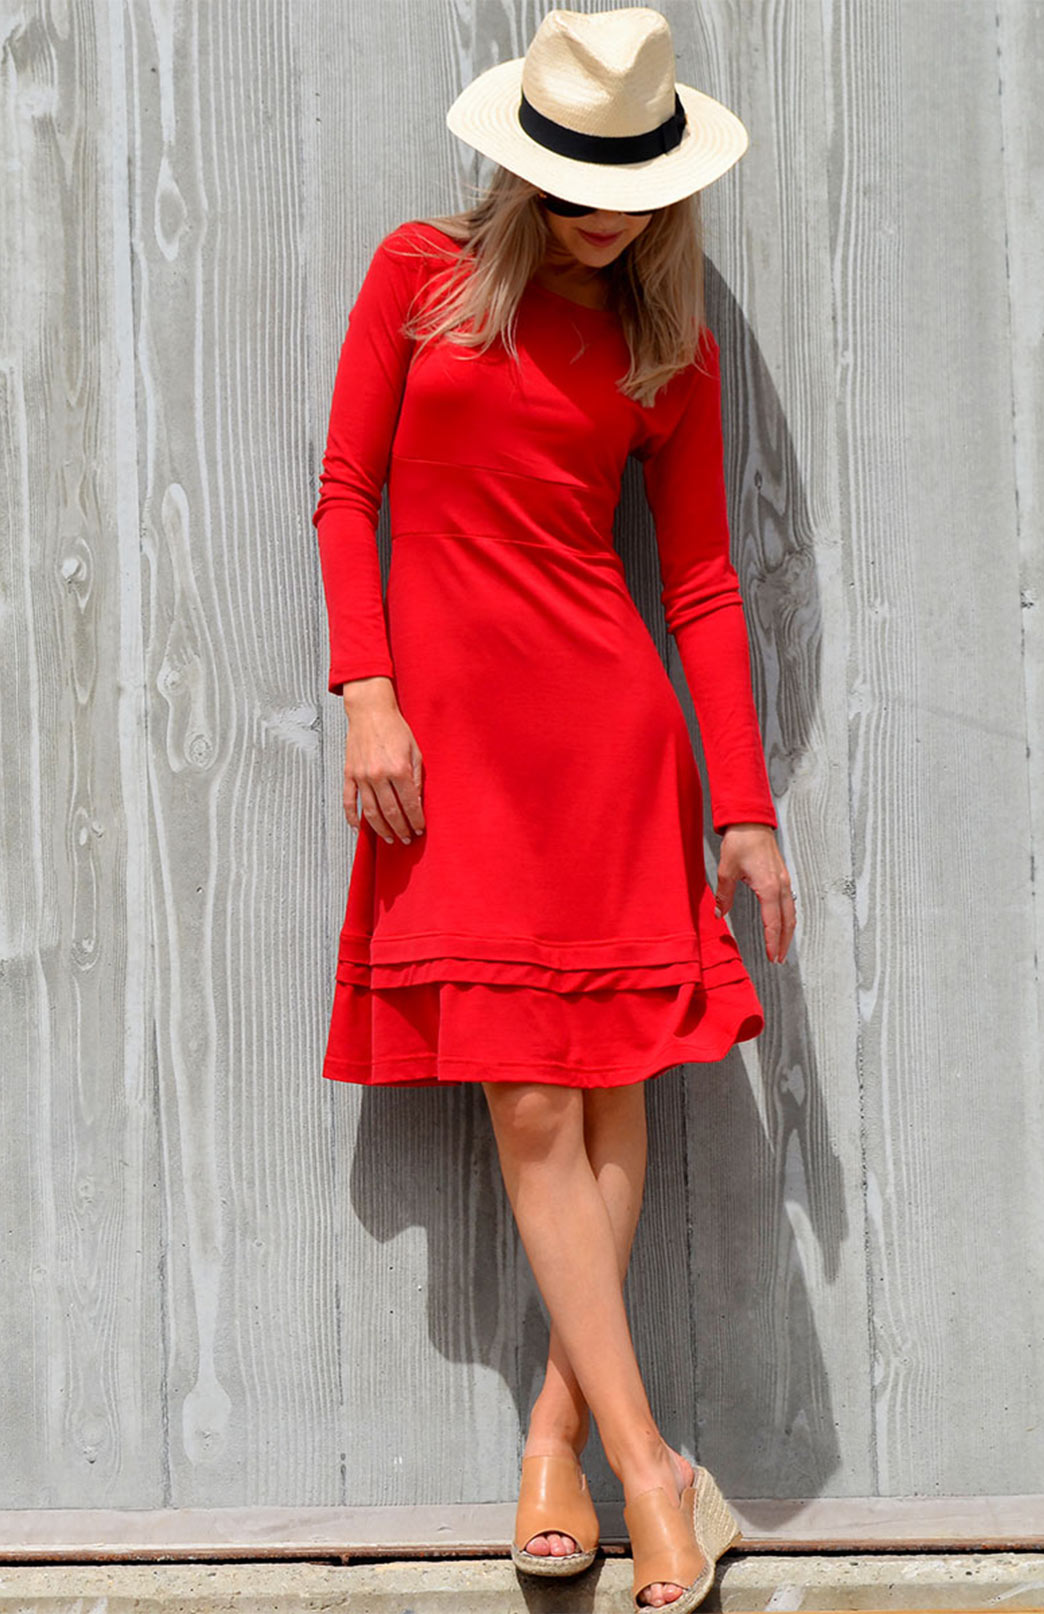 Indi Dress - Women's Long Sleeved Flame Red Winter Wool Dress - Smitten Merino Tasmania Australia